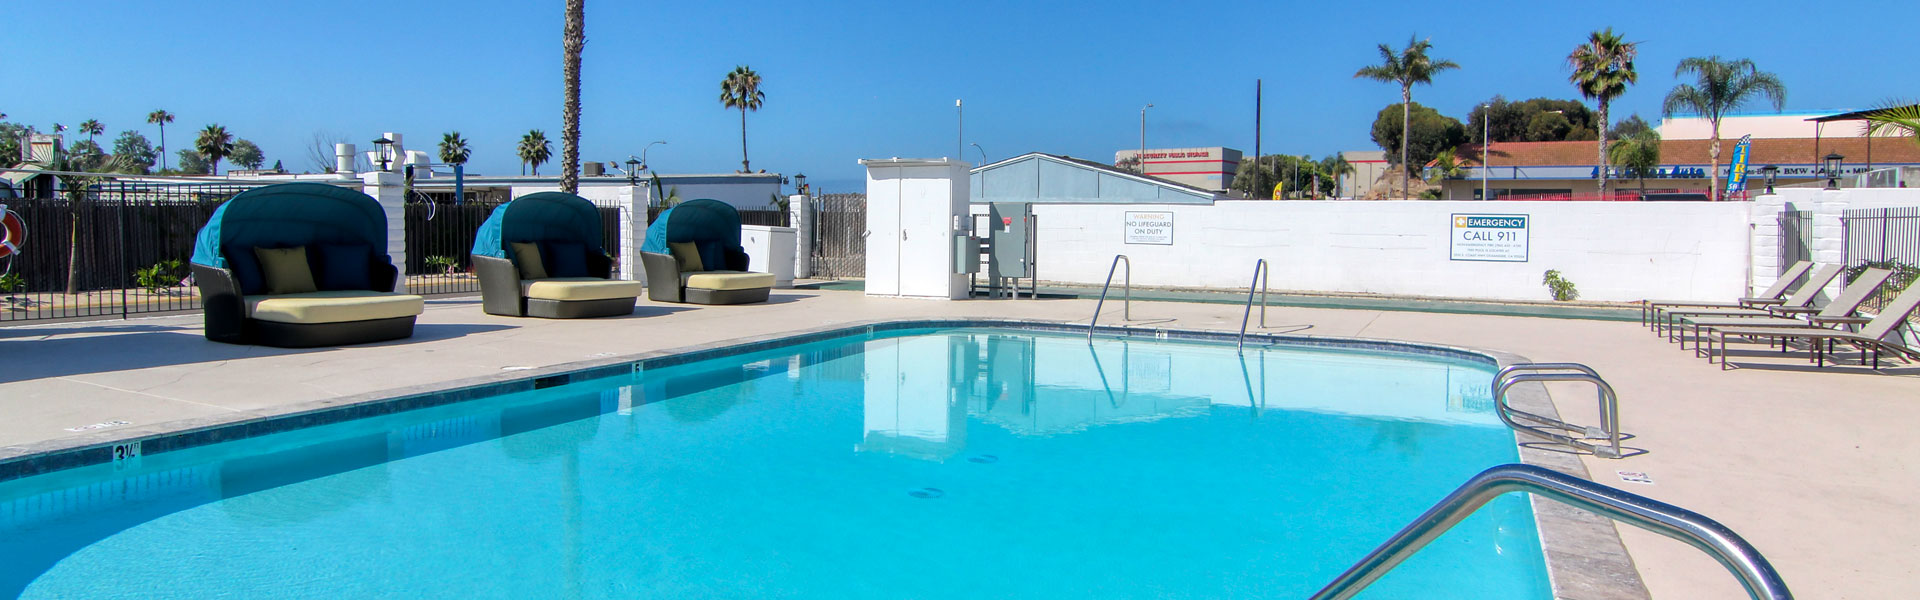 oceanside-rv-pool